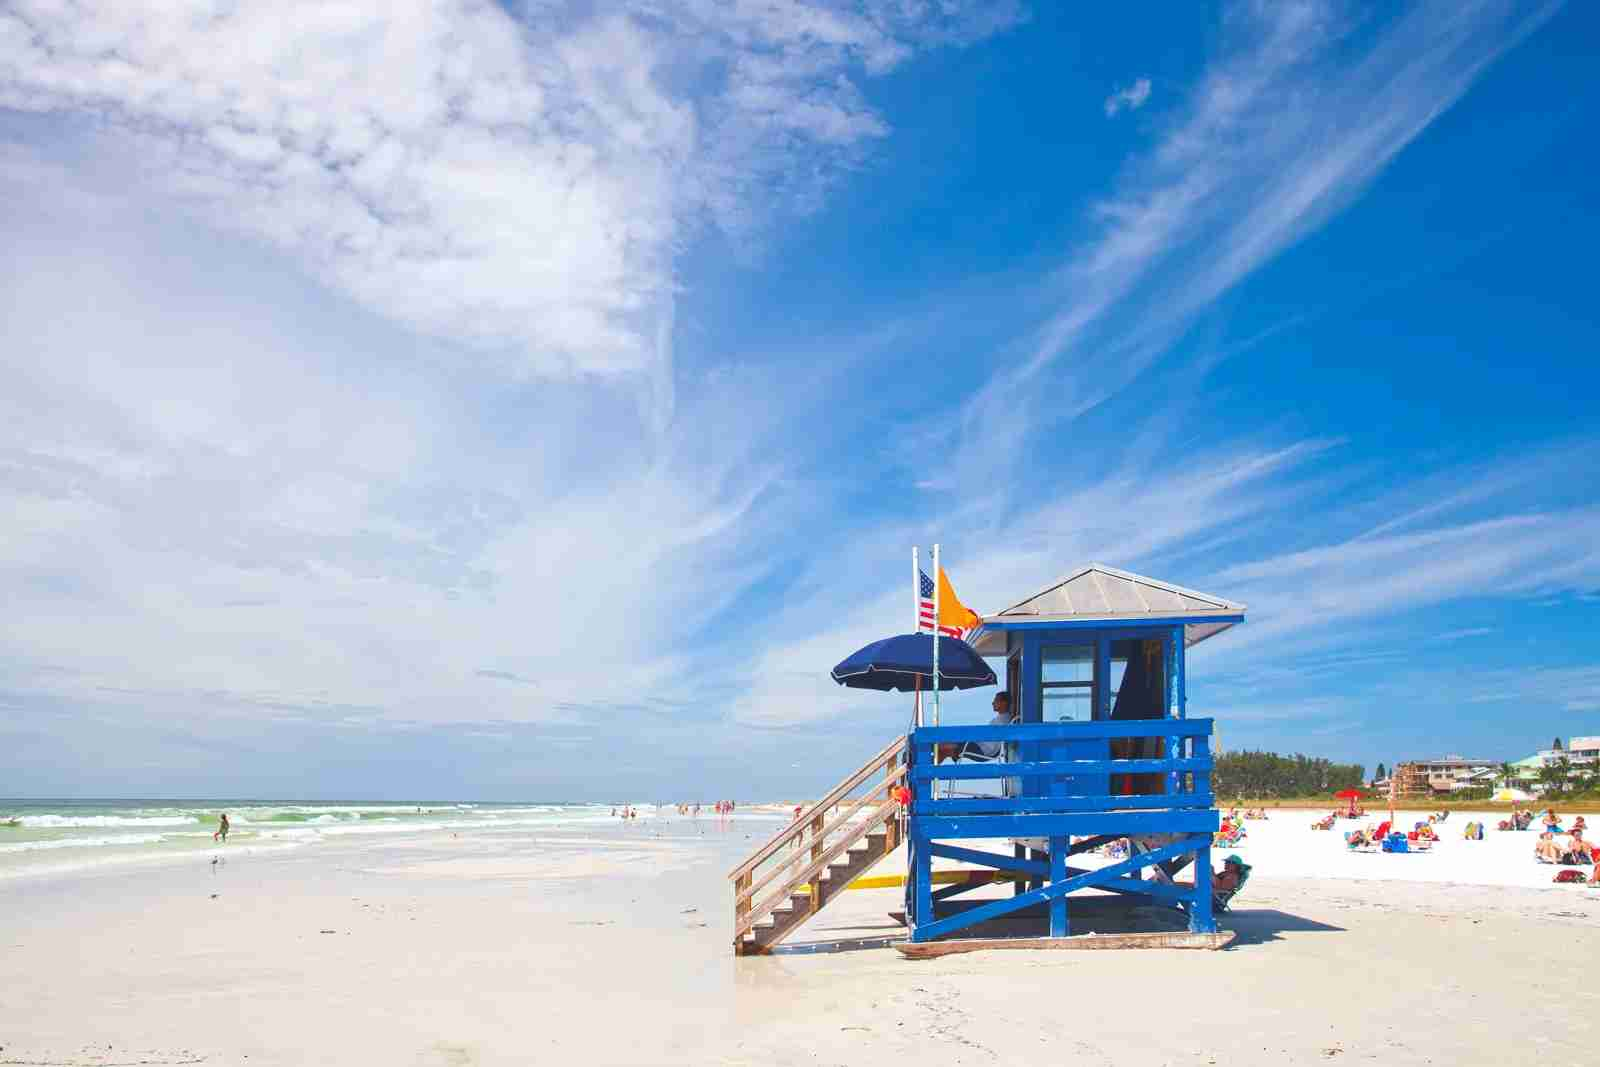 Siesta Key Beach. (Photo via Shutterstock)